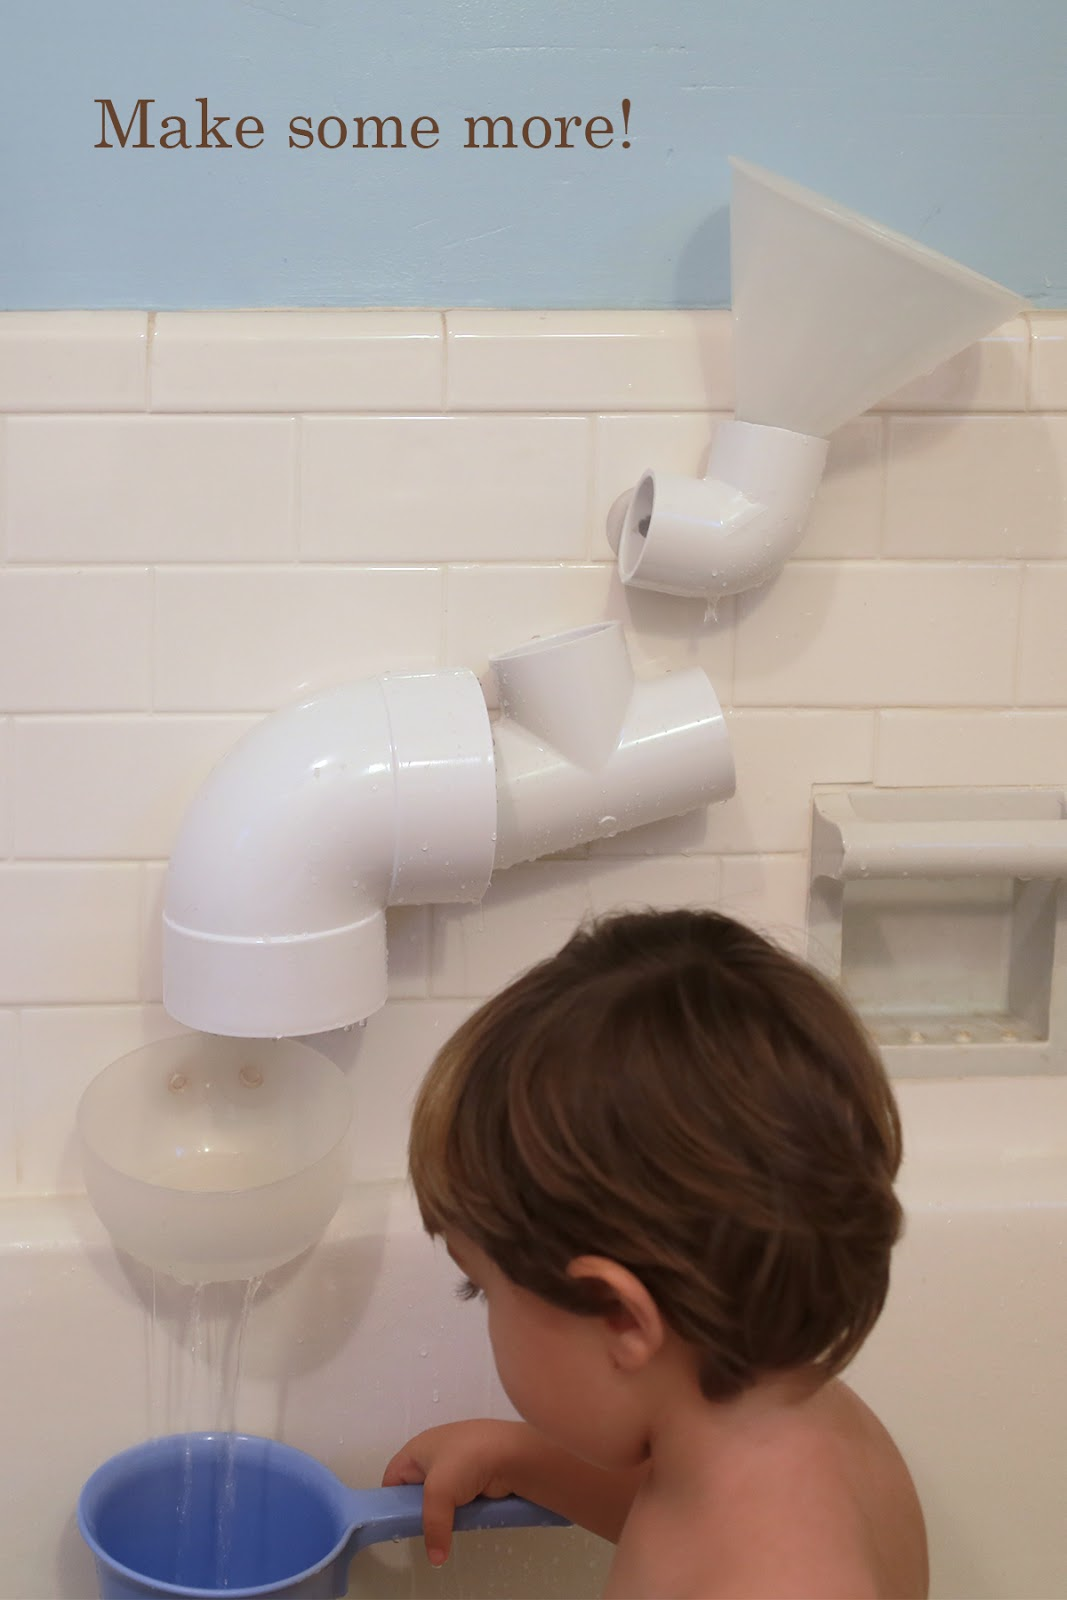 DIY Hardware Store Bath Toys! — All for the Boys